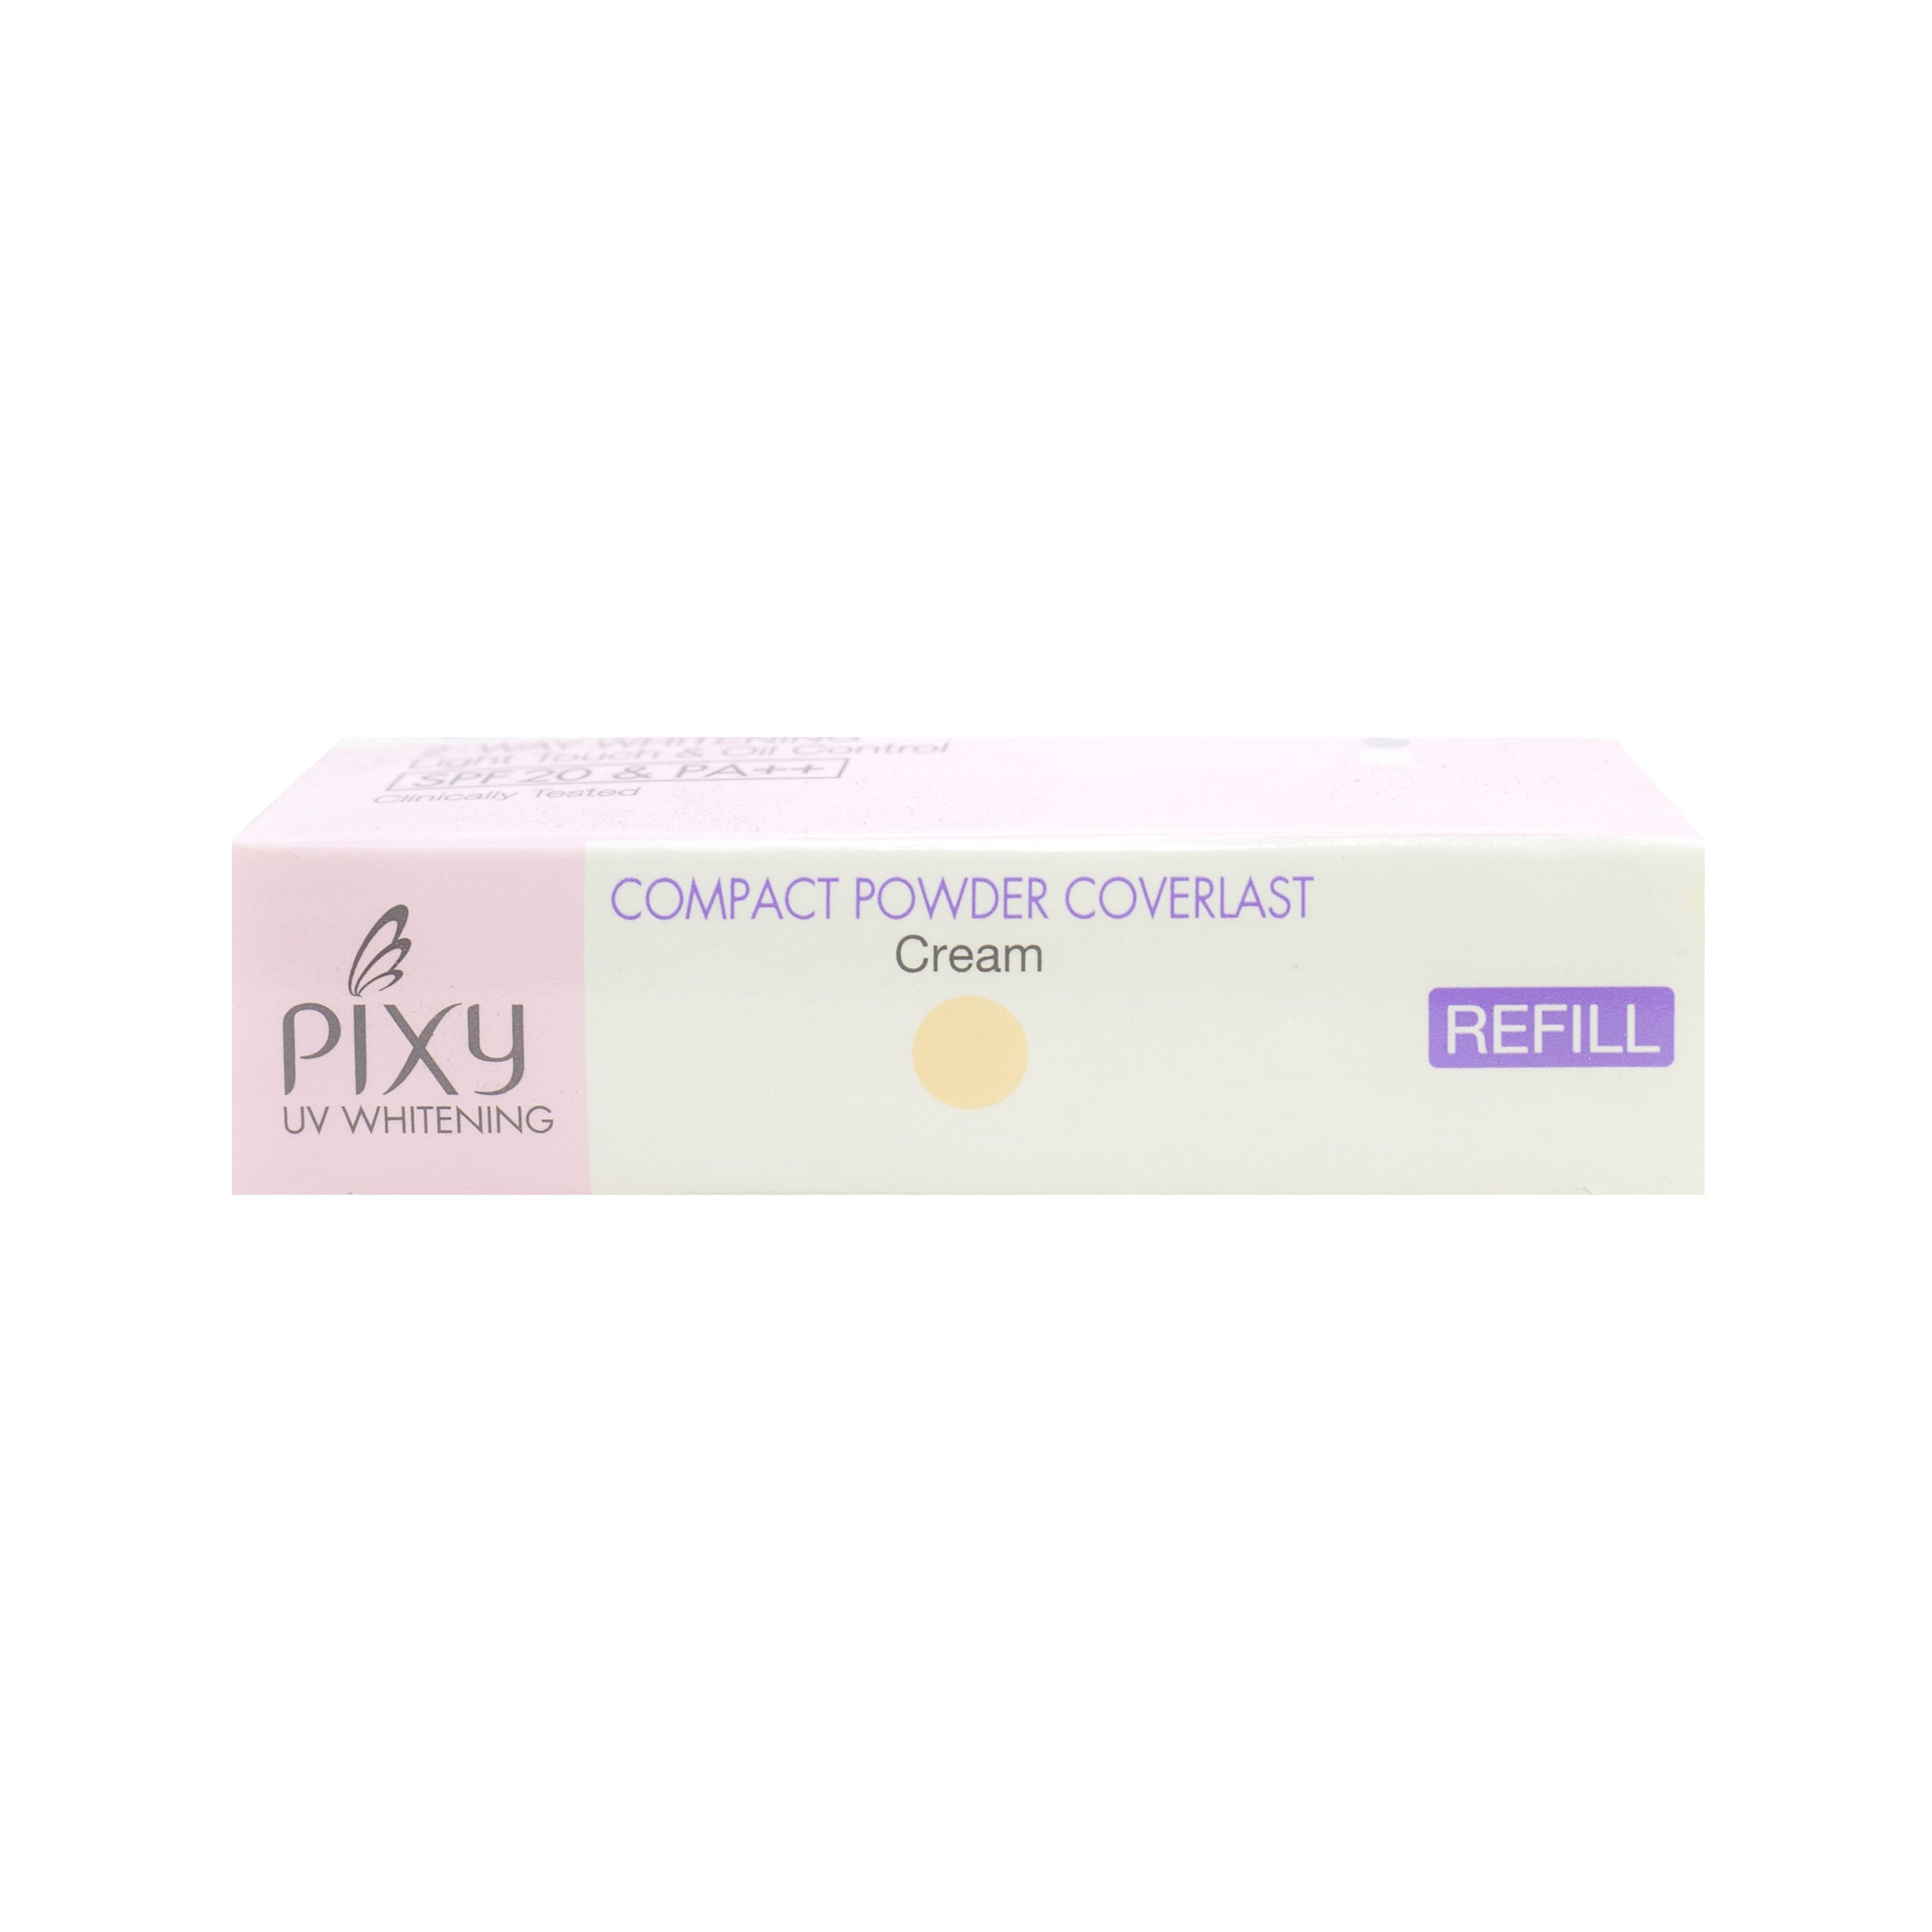 Pixy, Compact Powder Coverlast Refill, Cream, 11 g